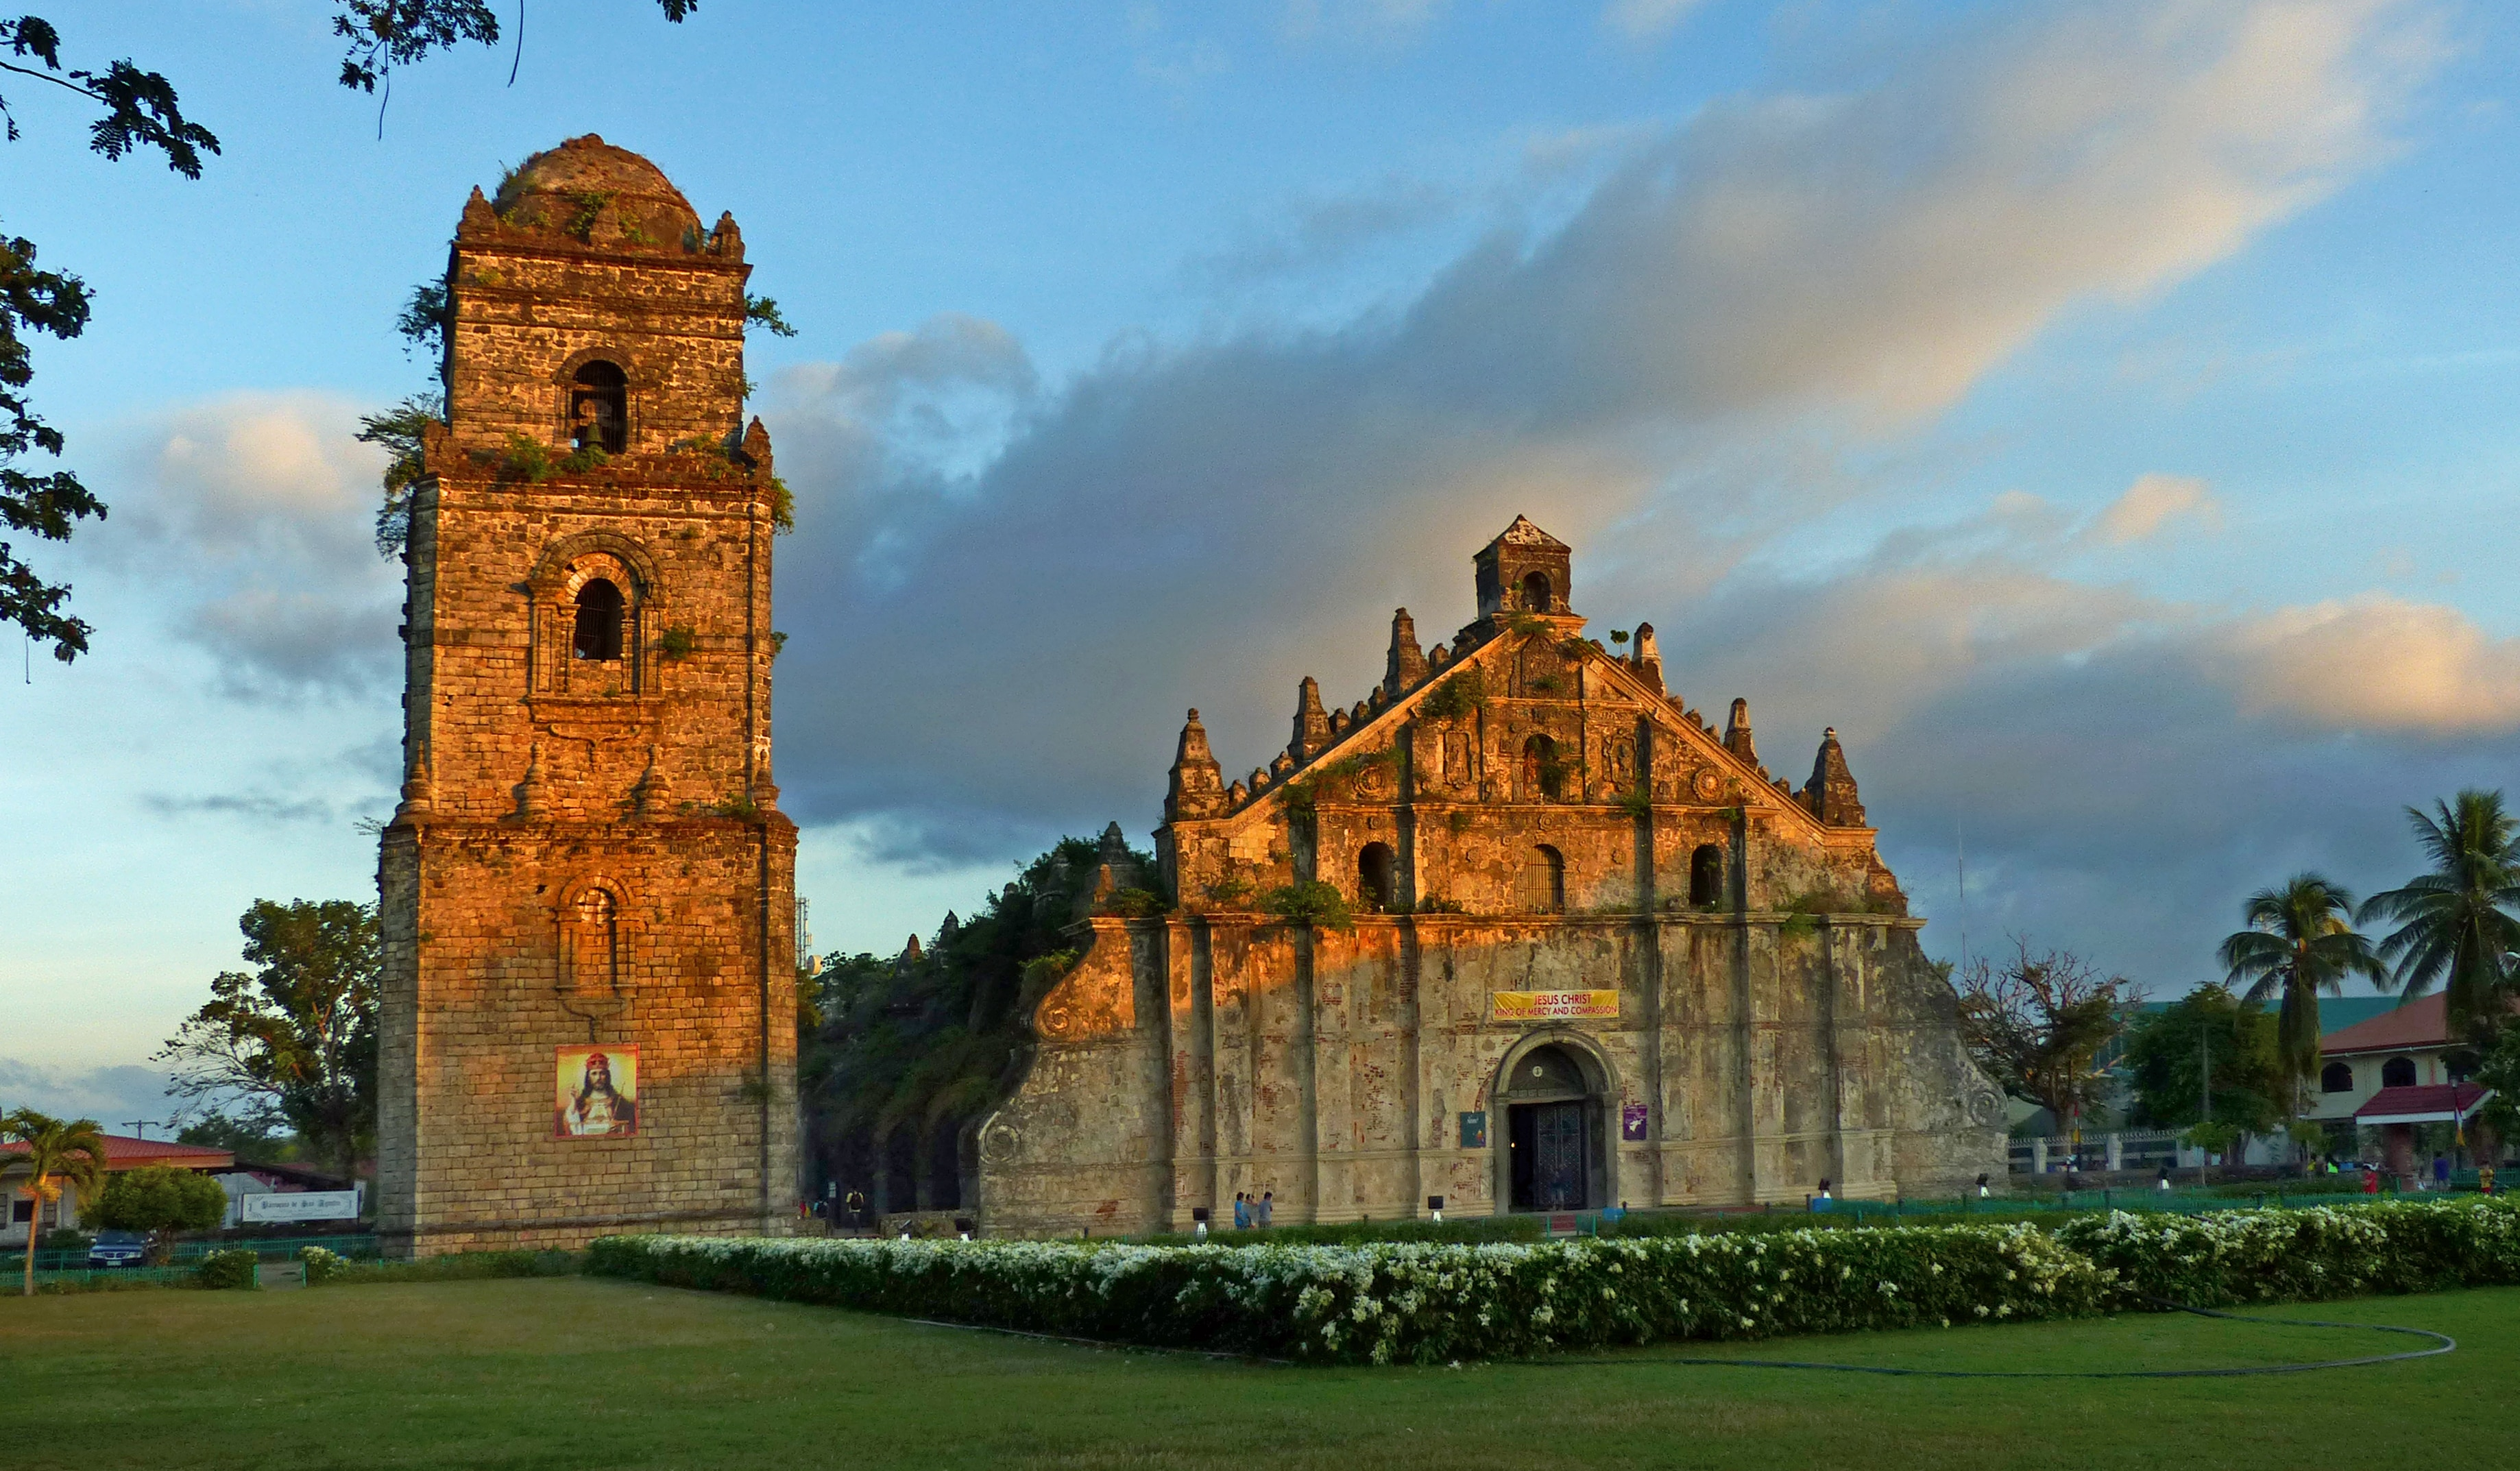 Paoay Church Laoag, the paoay church, Ilocos Norte, Philippines free image | Peakpx